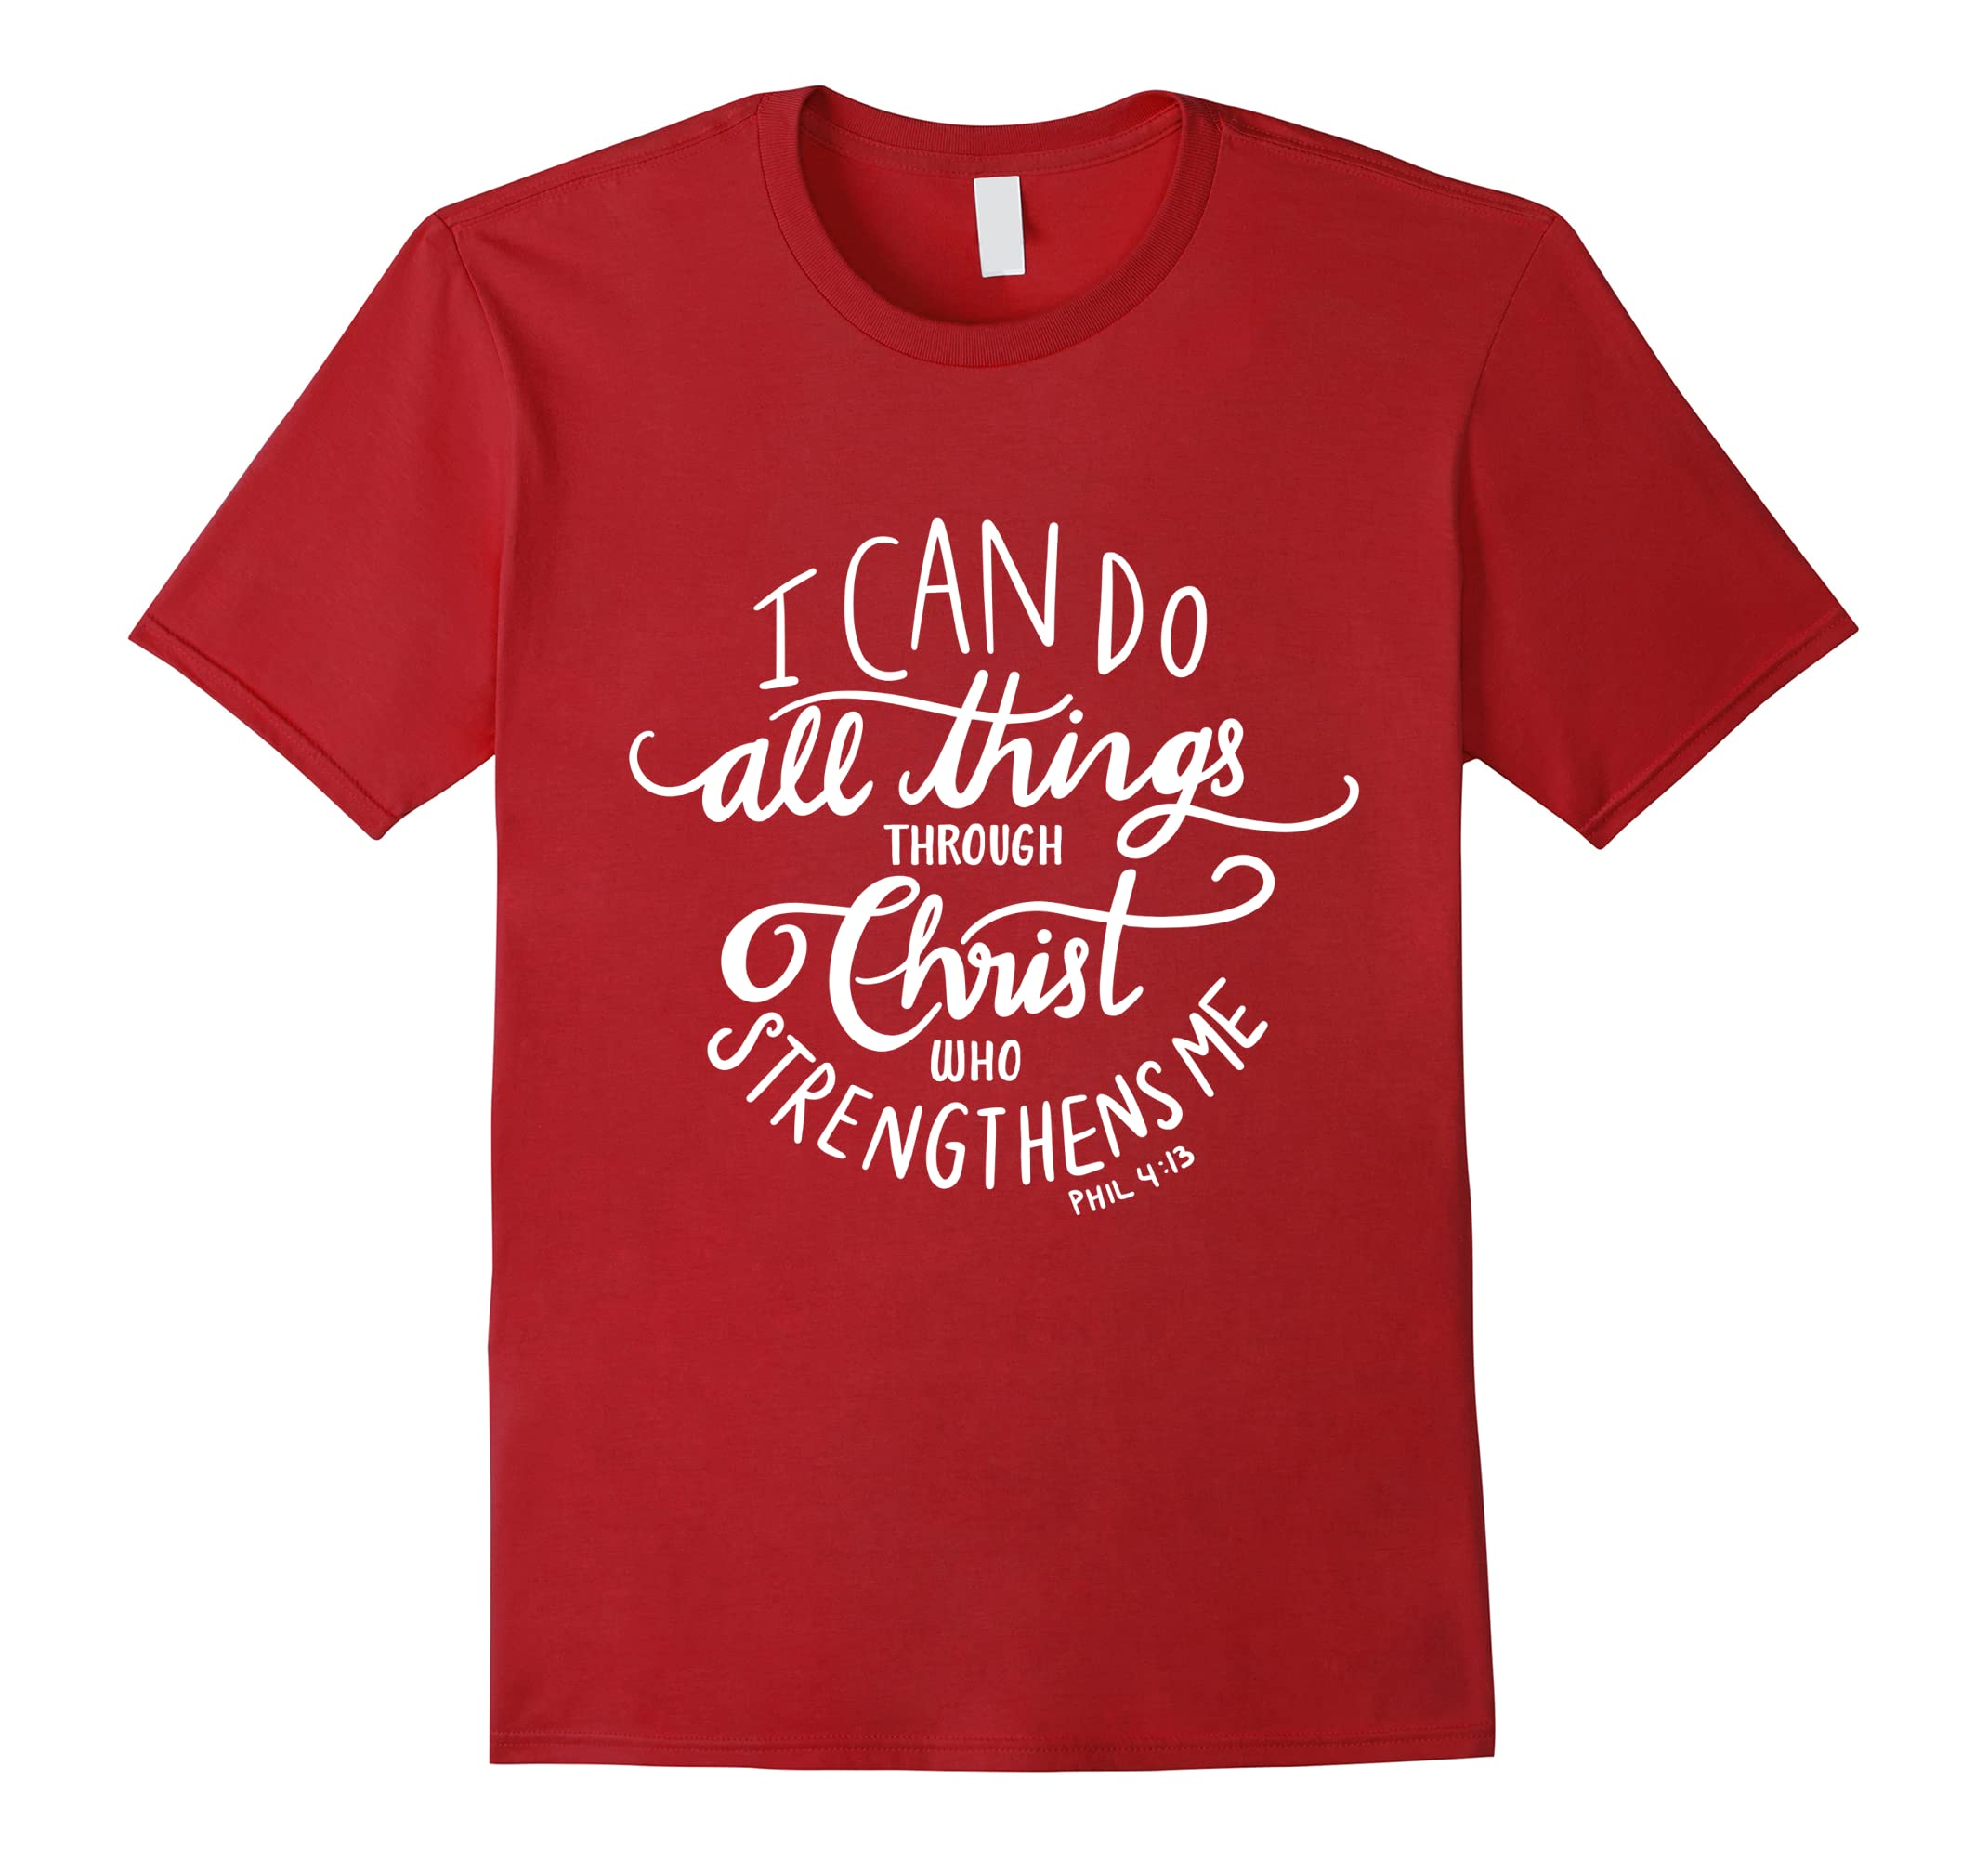 aecbb8d1796 I Can Do All Things Through Christ Who Strengthens Me Shirt-ah my shirt one